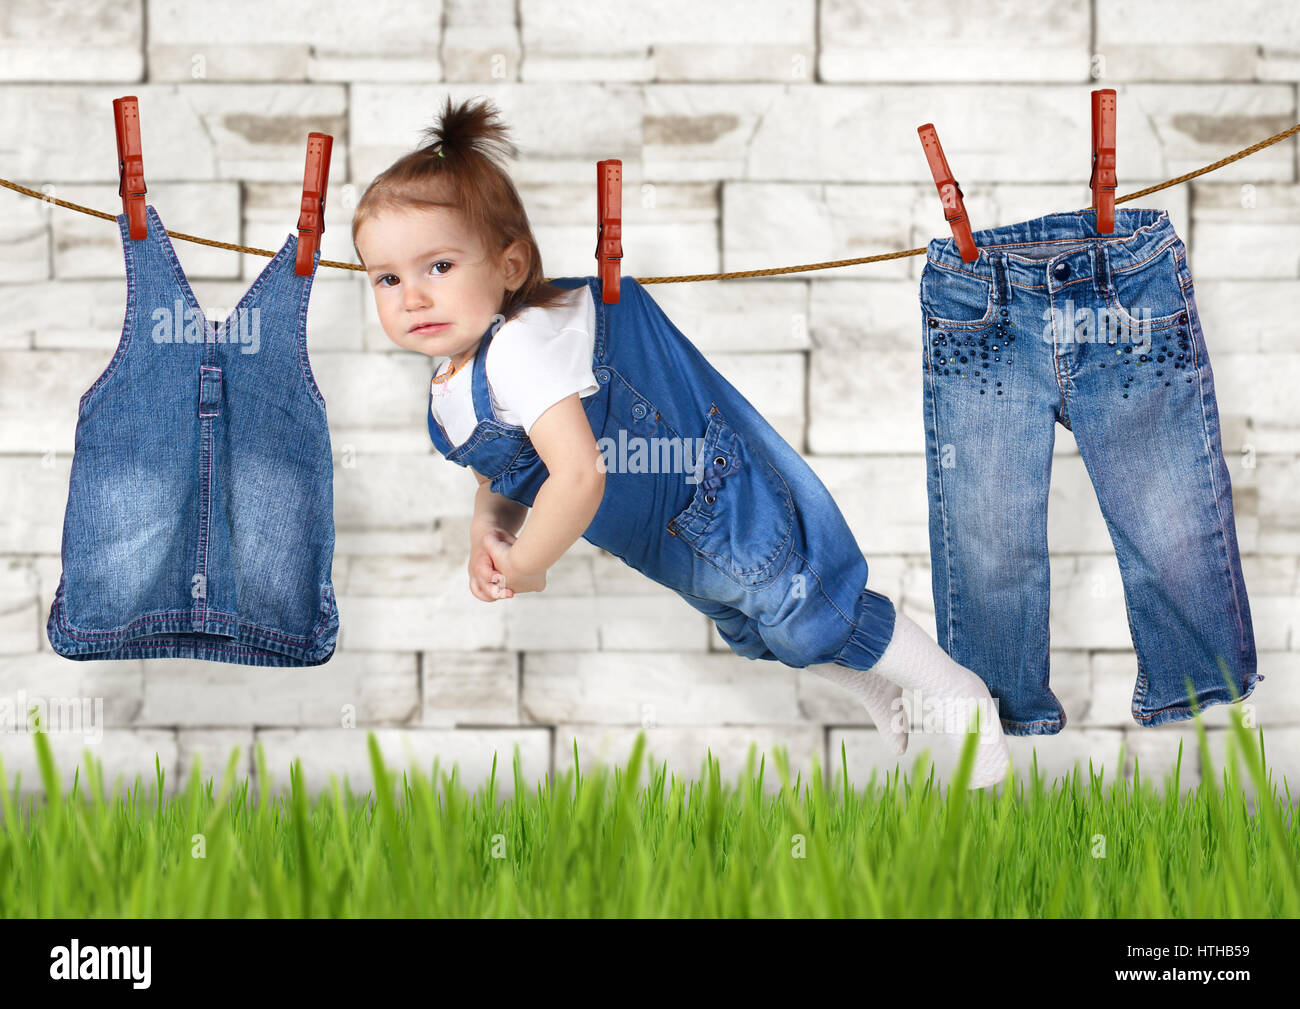 failed housework concept, Funny child hanging on clothesline - Stock Image